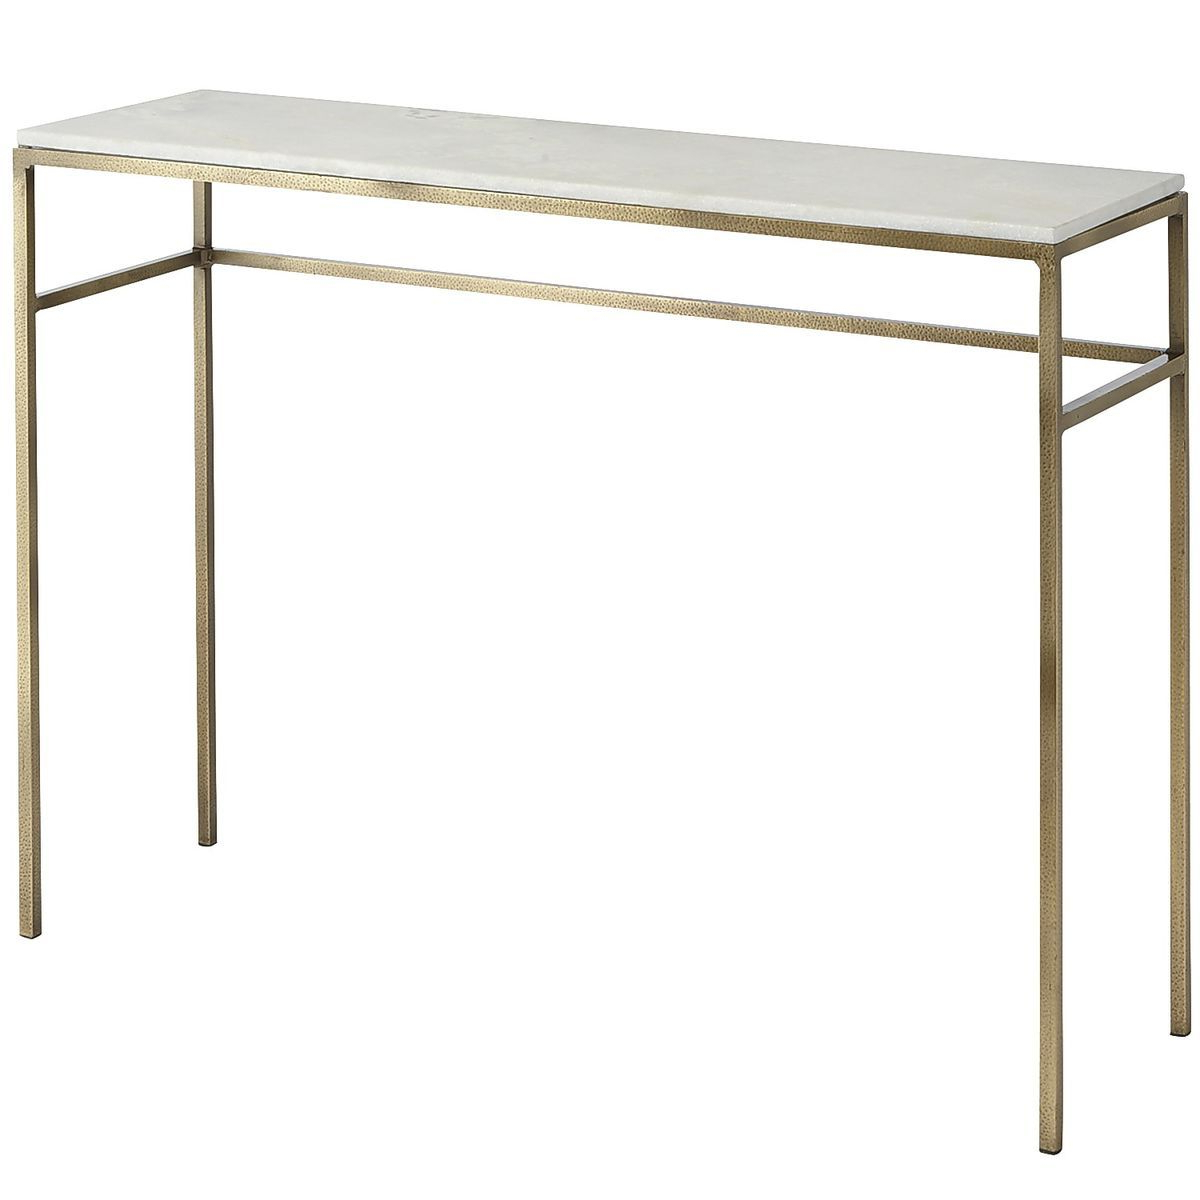 If You're Looking For A Way To Elevate Your Living Space, Ethel Intended For Elke Marble Console Tables With Brass Base (View 13 of 20)